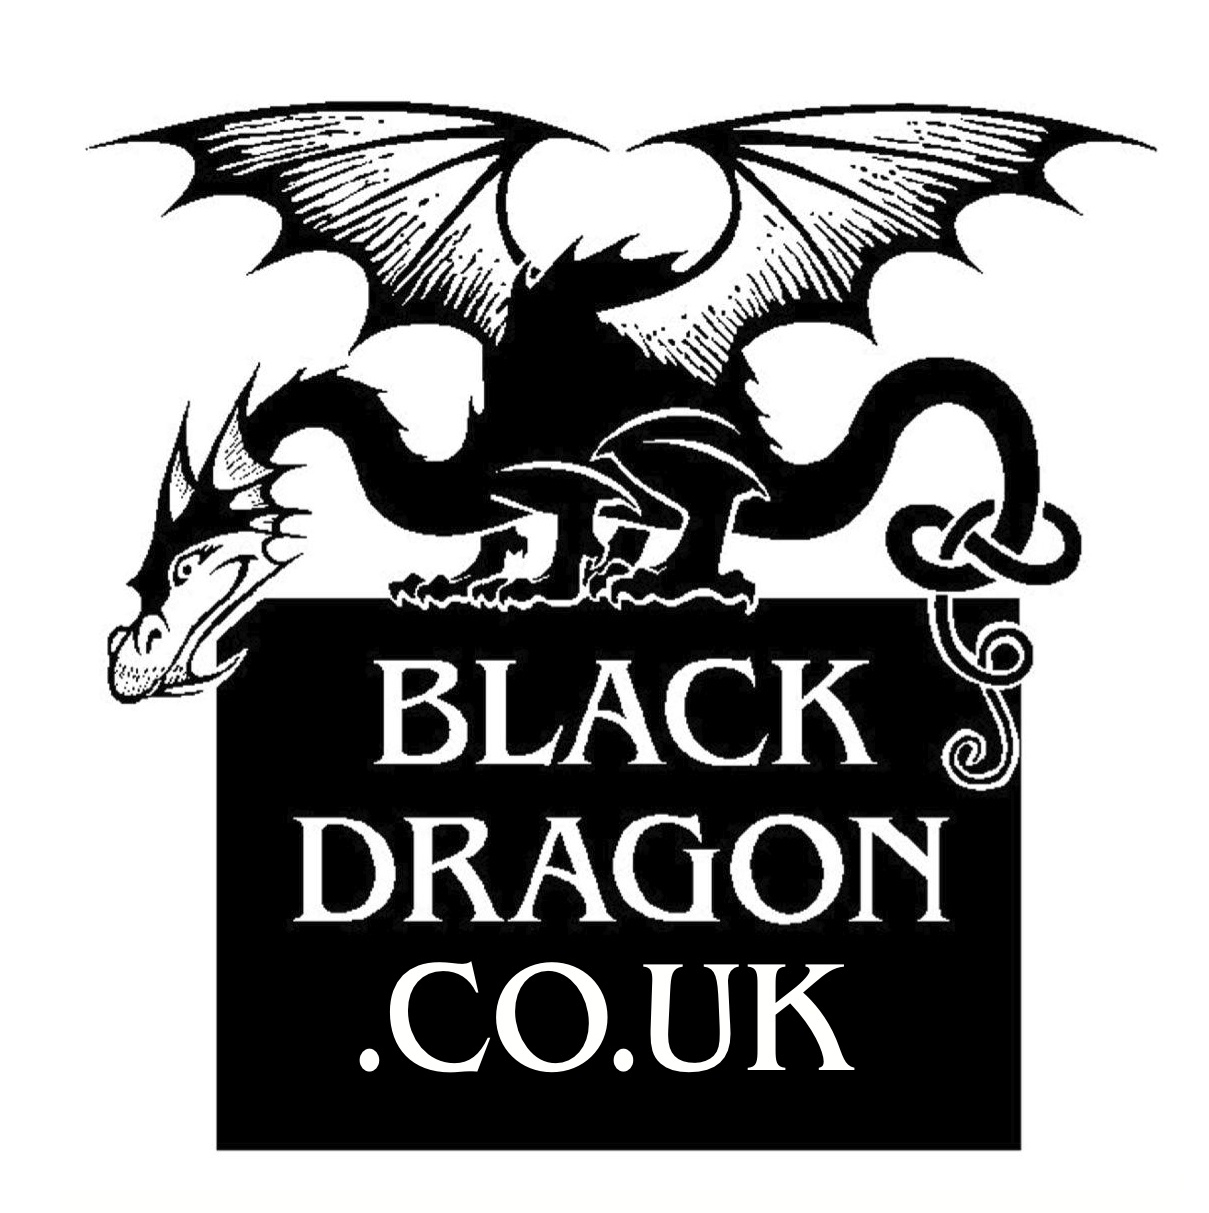 Black dragon crafts celebrates success of new pendants in the usa greetings from black dragon crafts wales kristyandbryce Image collections